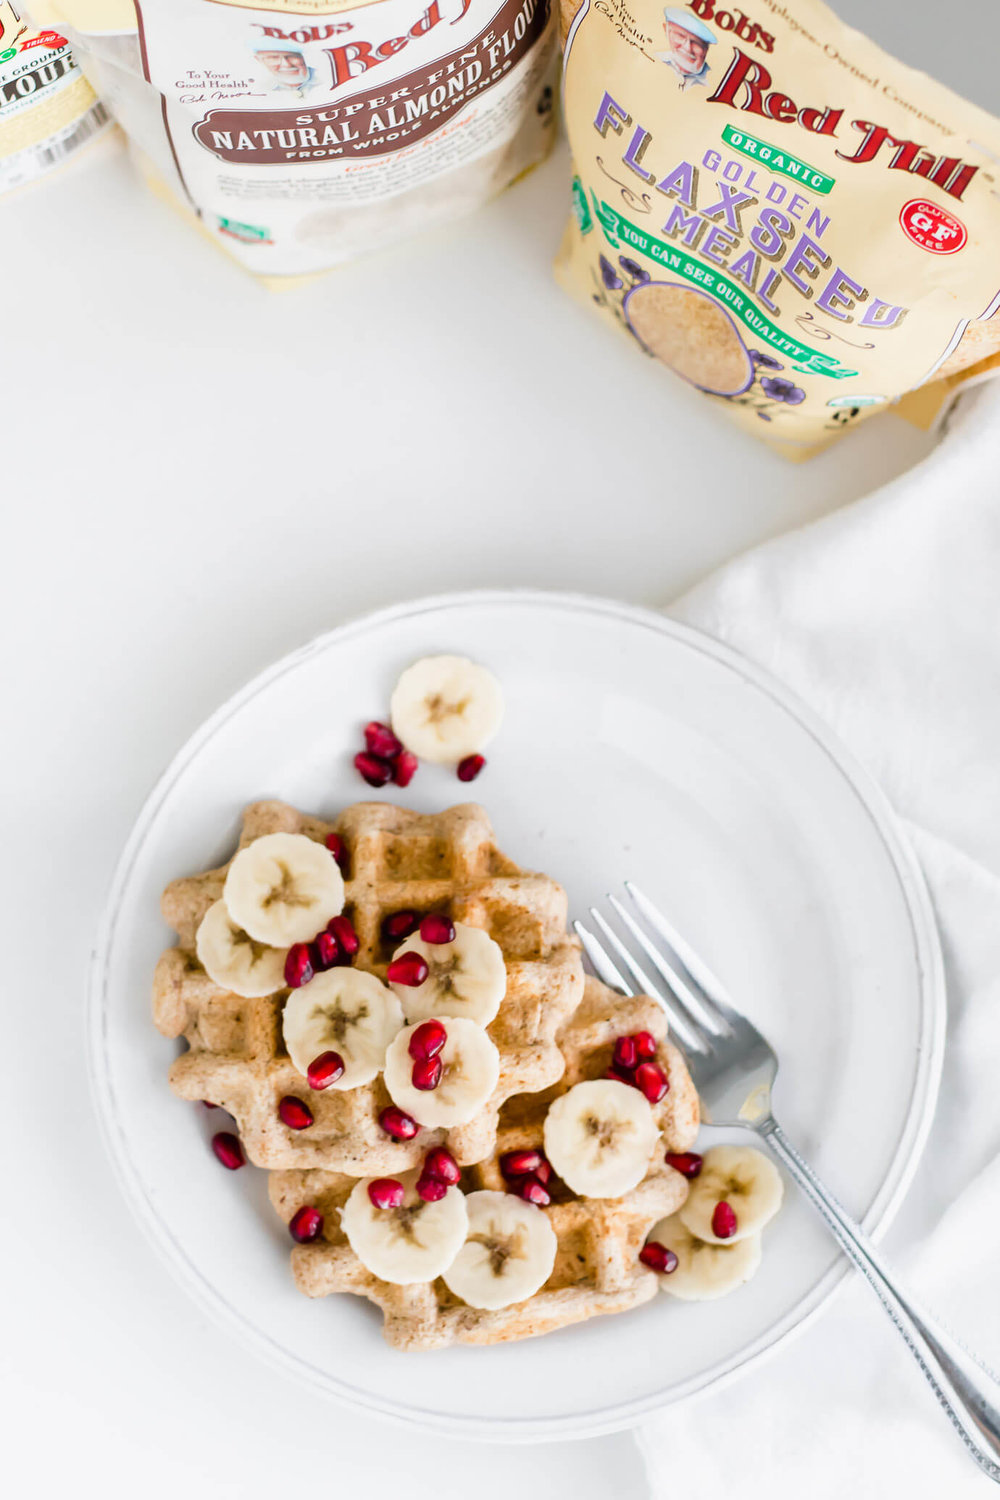 Waffles_Bobs_Red_Mill-2-of-2-1.jpg